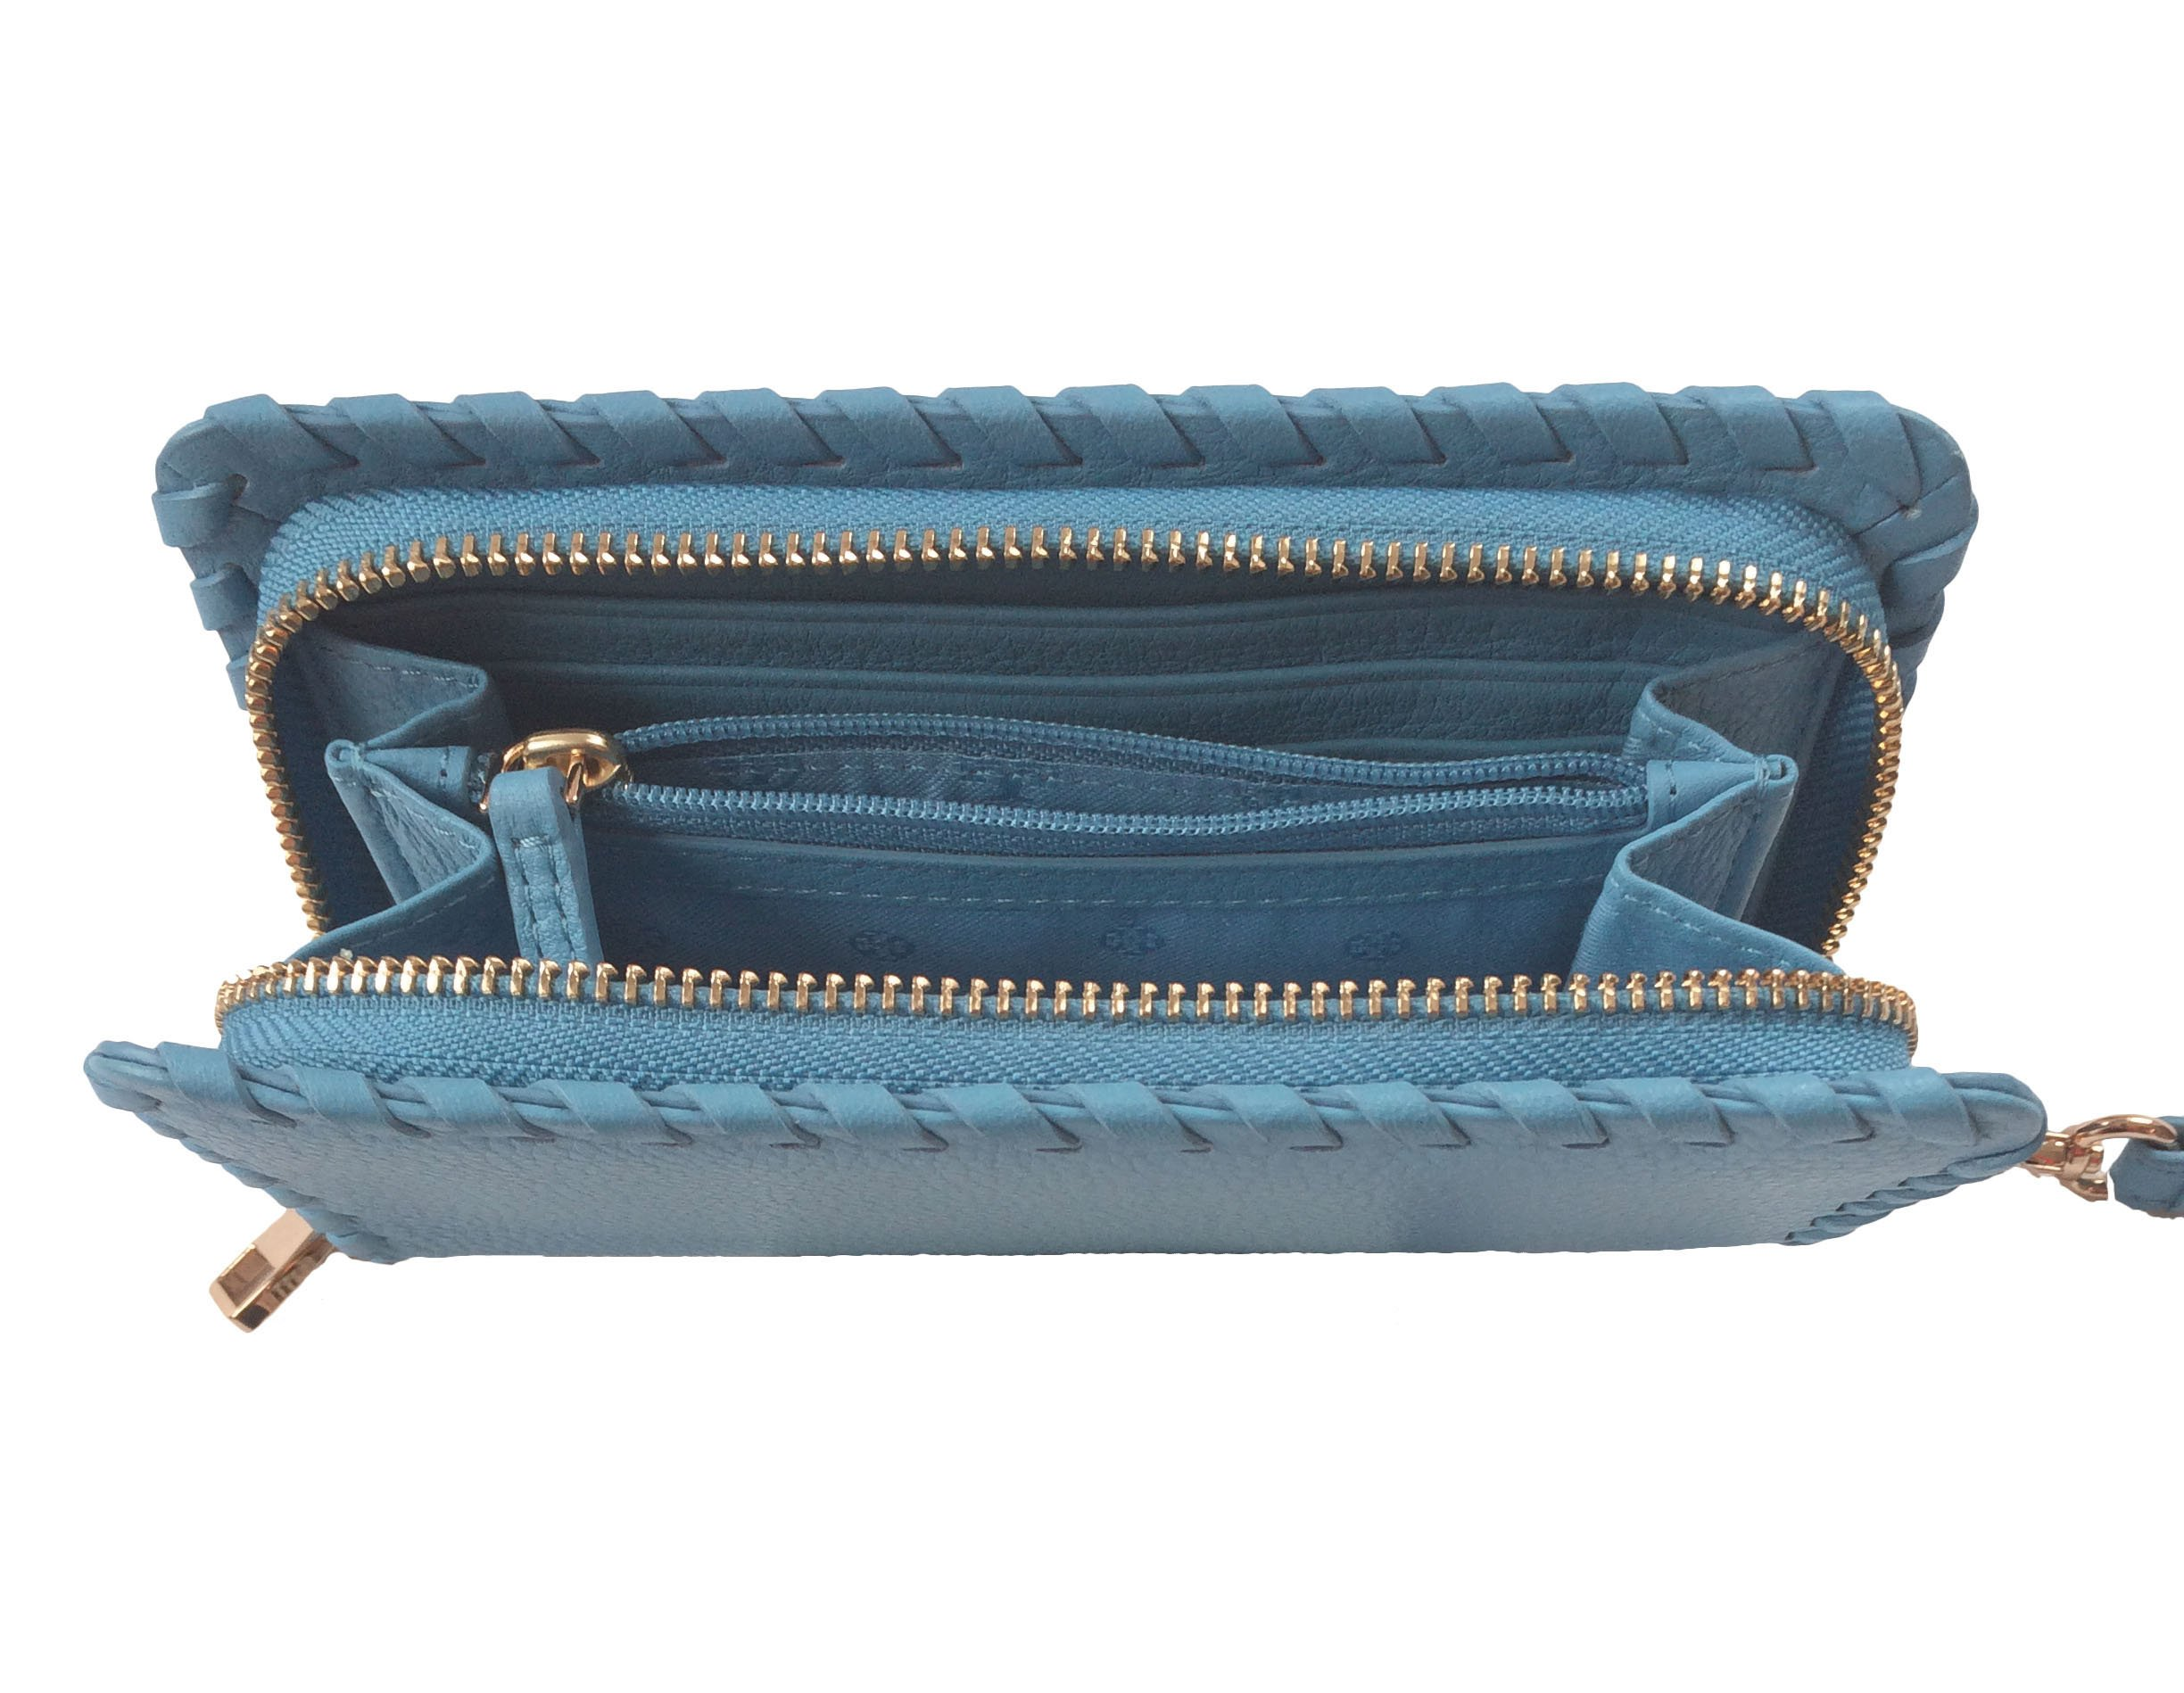 Tory Burch Marion Leather Smartphone Wristlet (Montego Blue) by Tory Burch (Image #4)